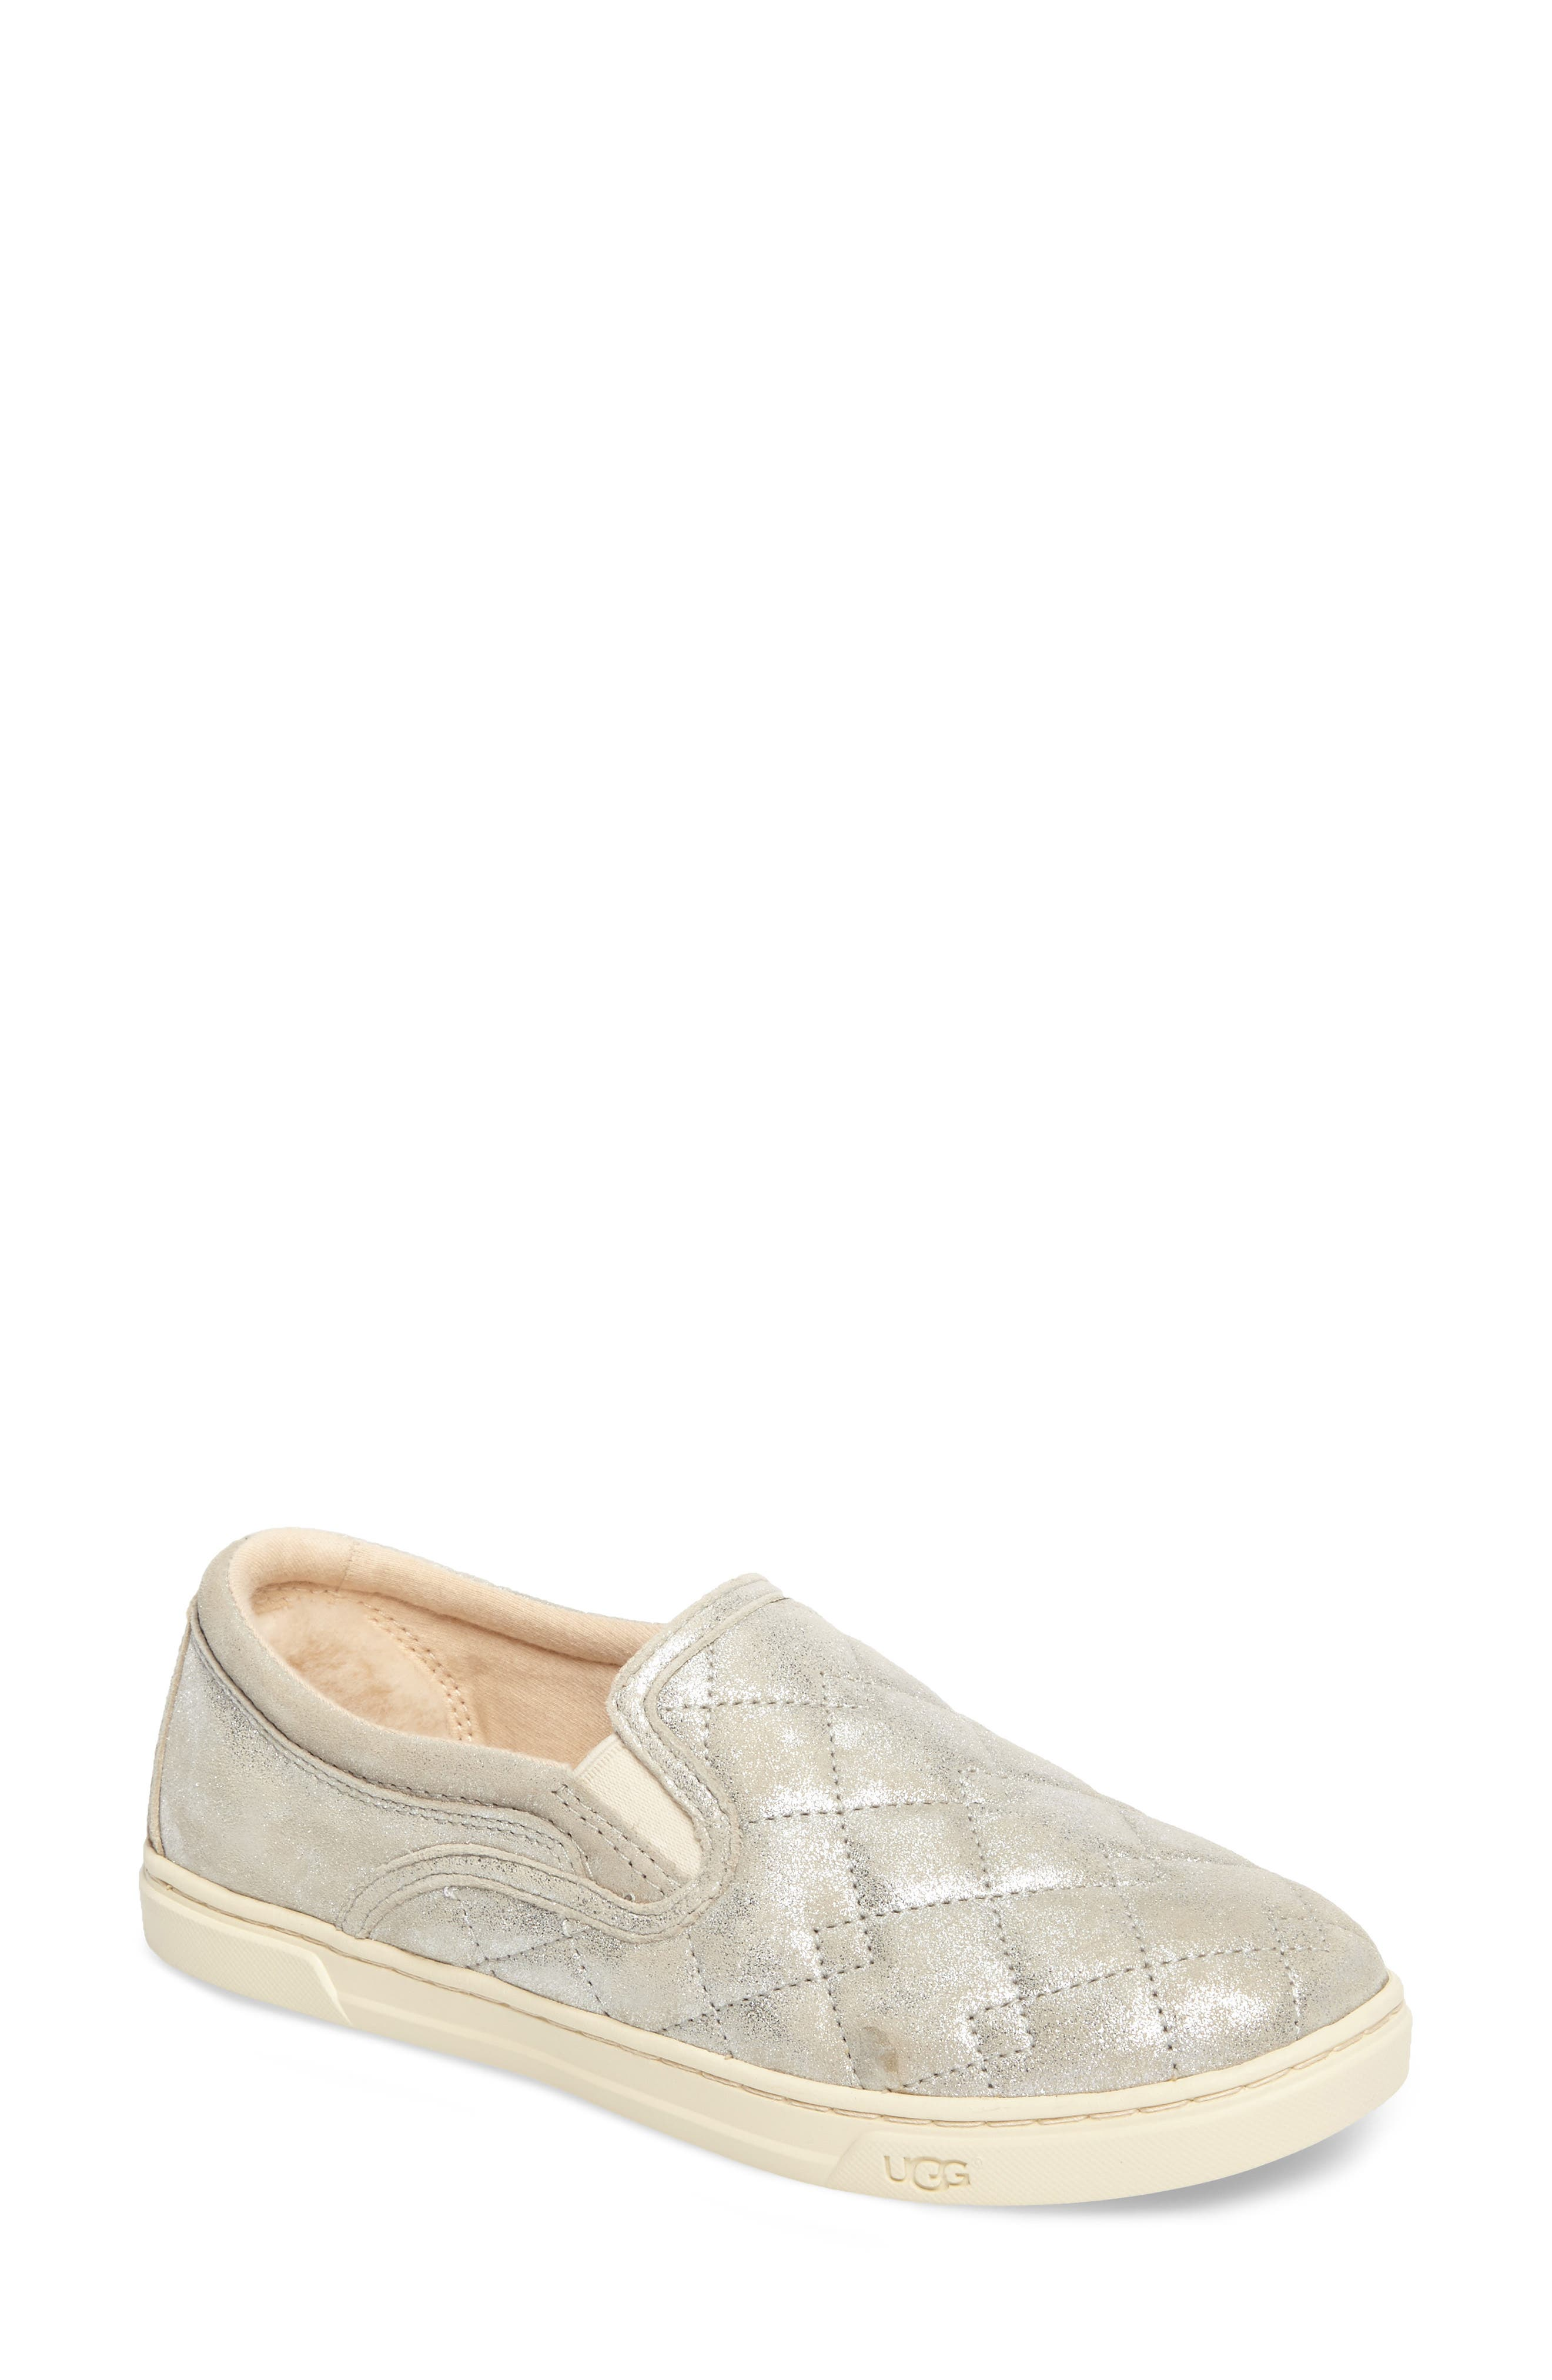 Fierce Stardust Quilted Slip-On Sneaker,                             Main thumbnail 1, color,                             040